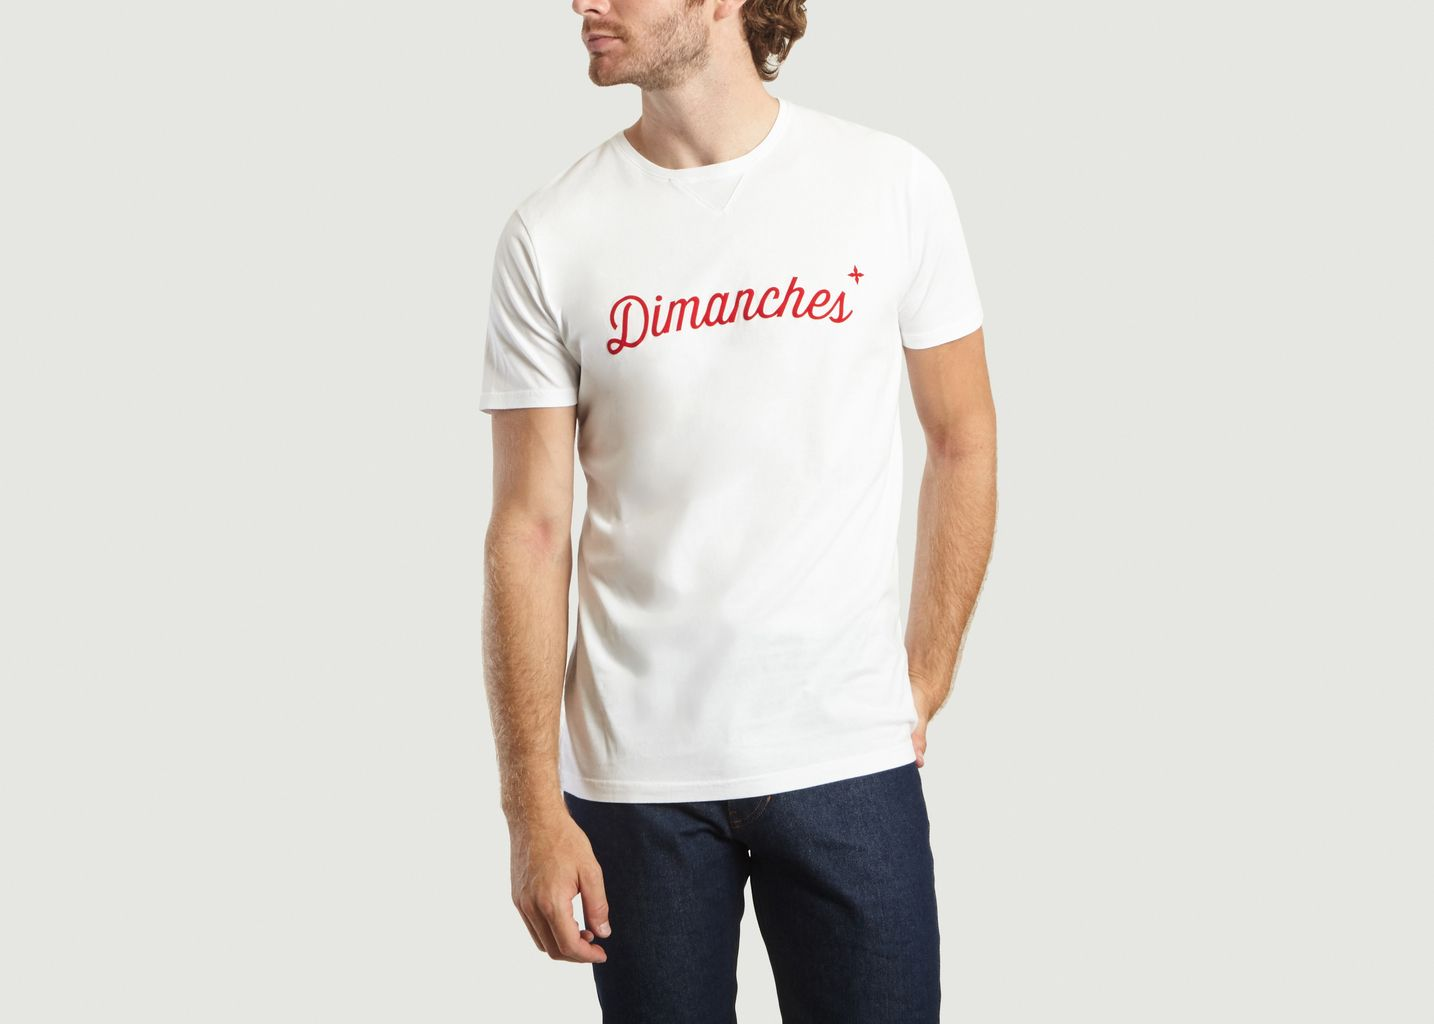 T-shirt Dimanches - Commune de Paris